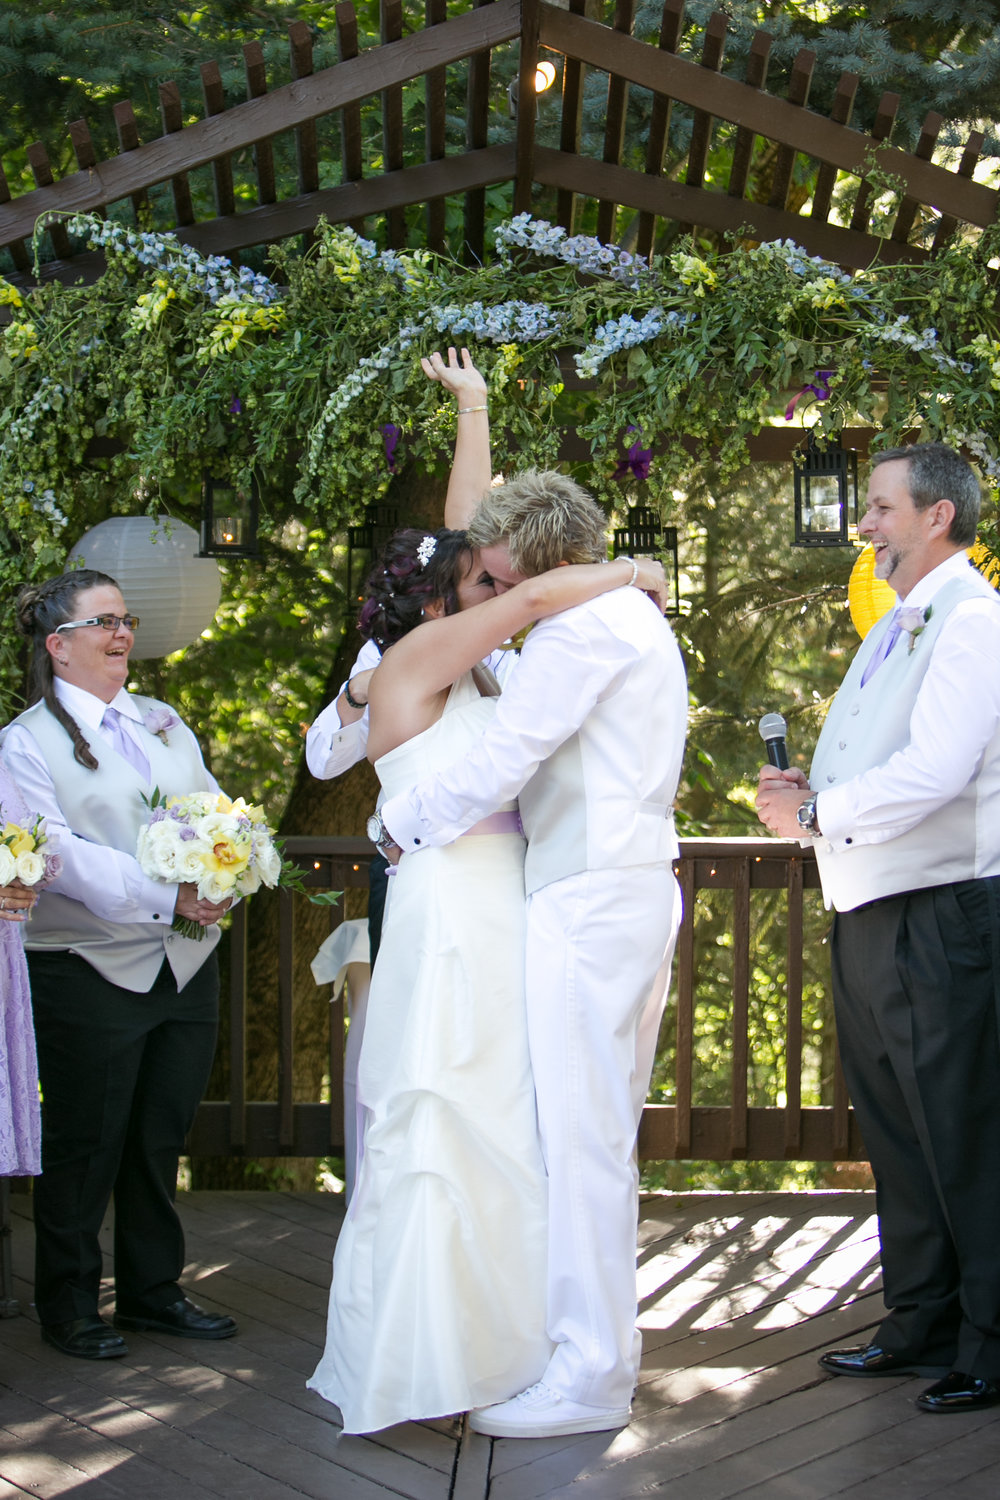 same-sex-wedding-utah-37.jpg